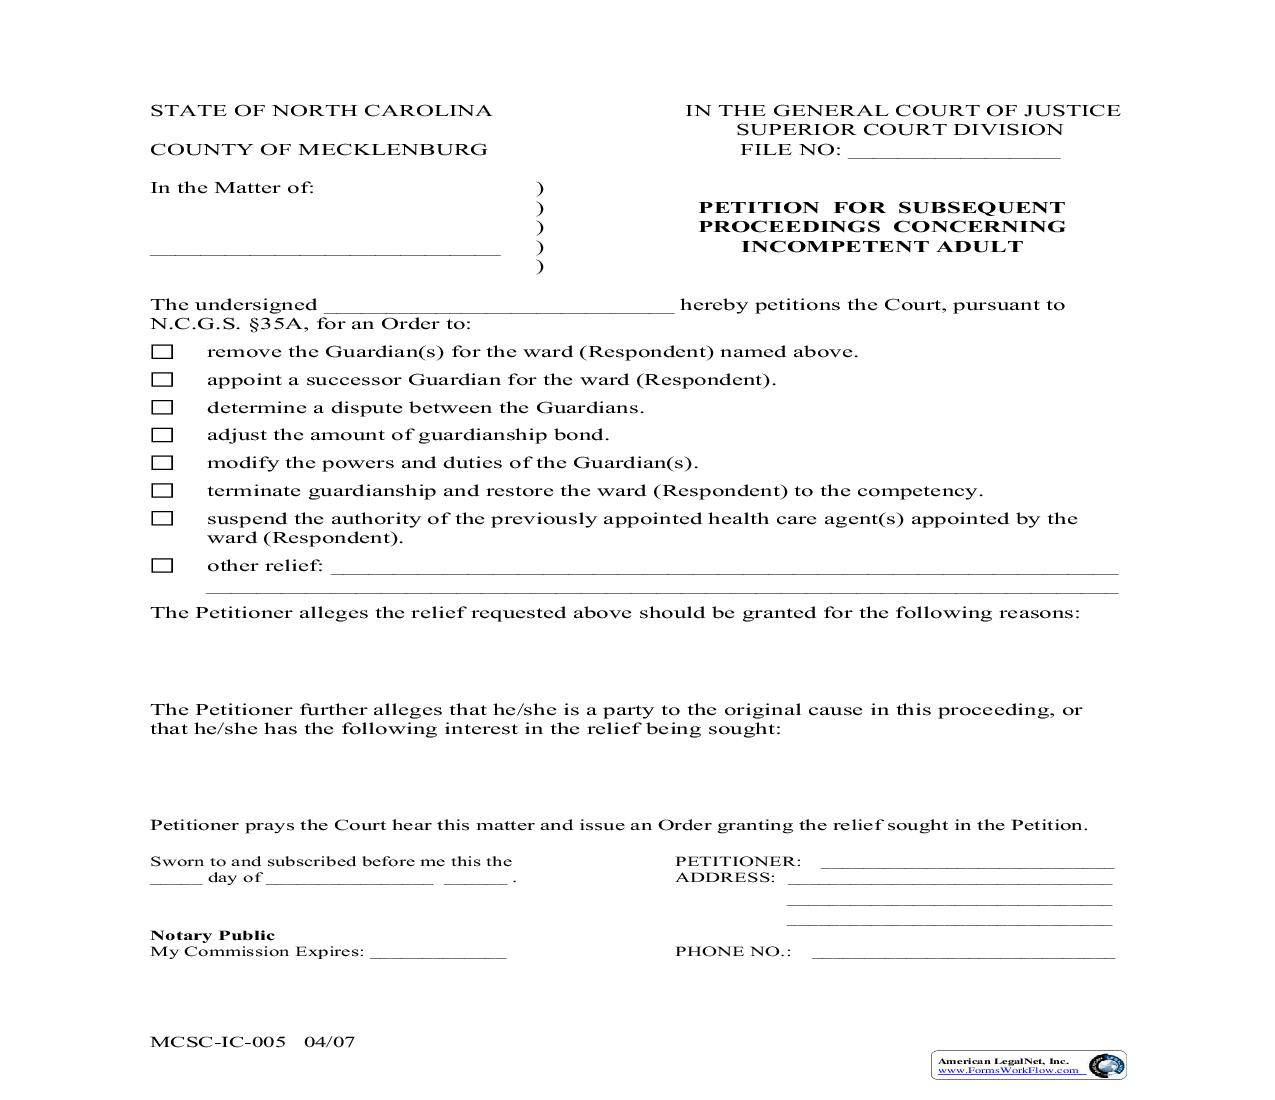 Petition For Subsequent Proceedings Concerning Incompetent Adult {MCSC-IC-005} | Pdf Fpdf Doc Docx | North Carolina